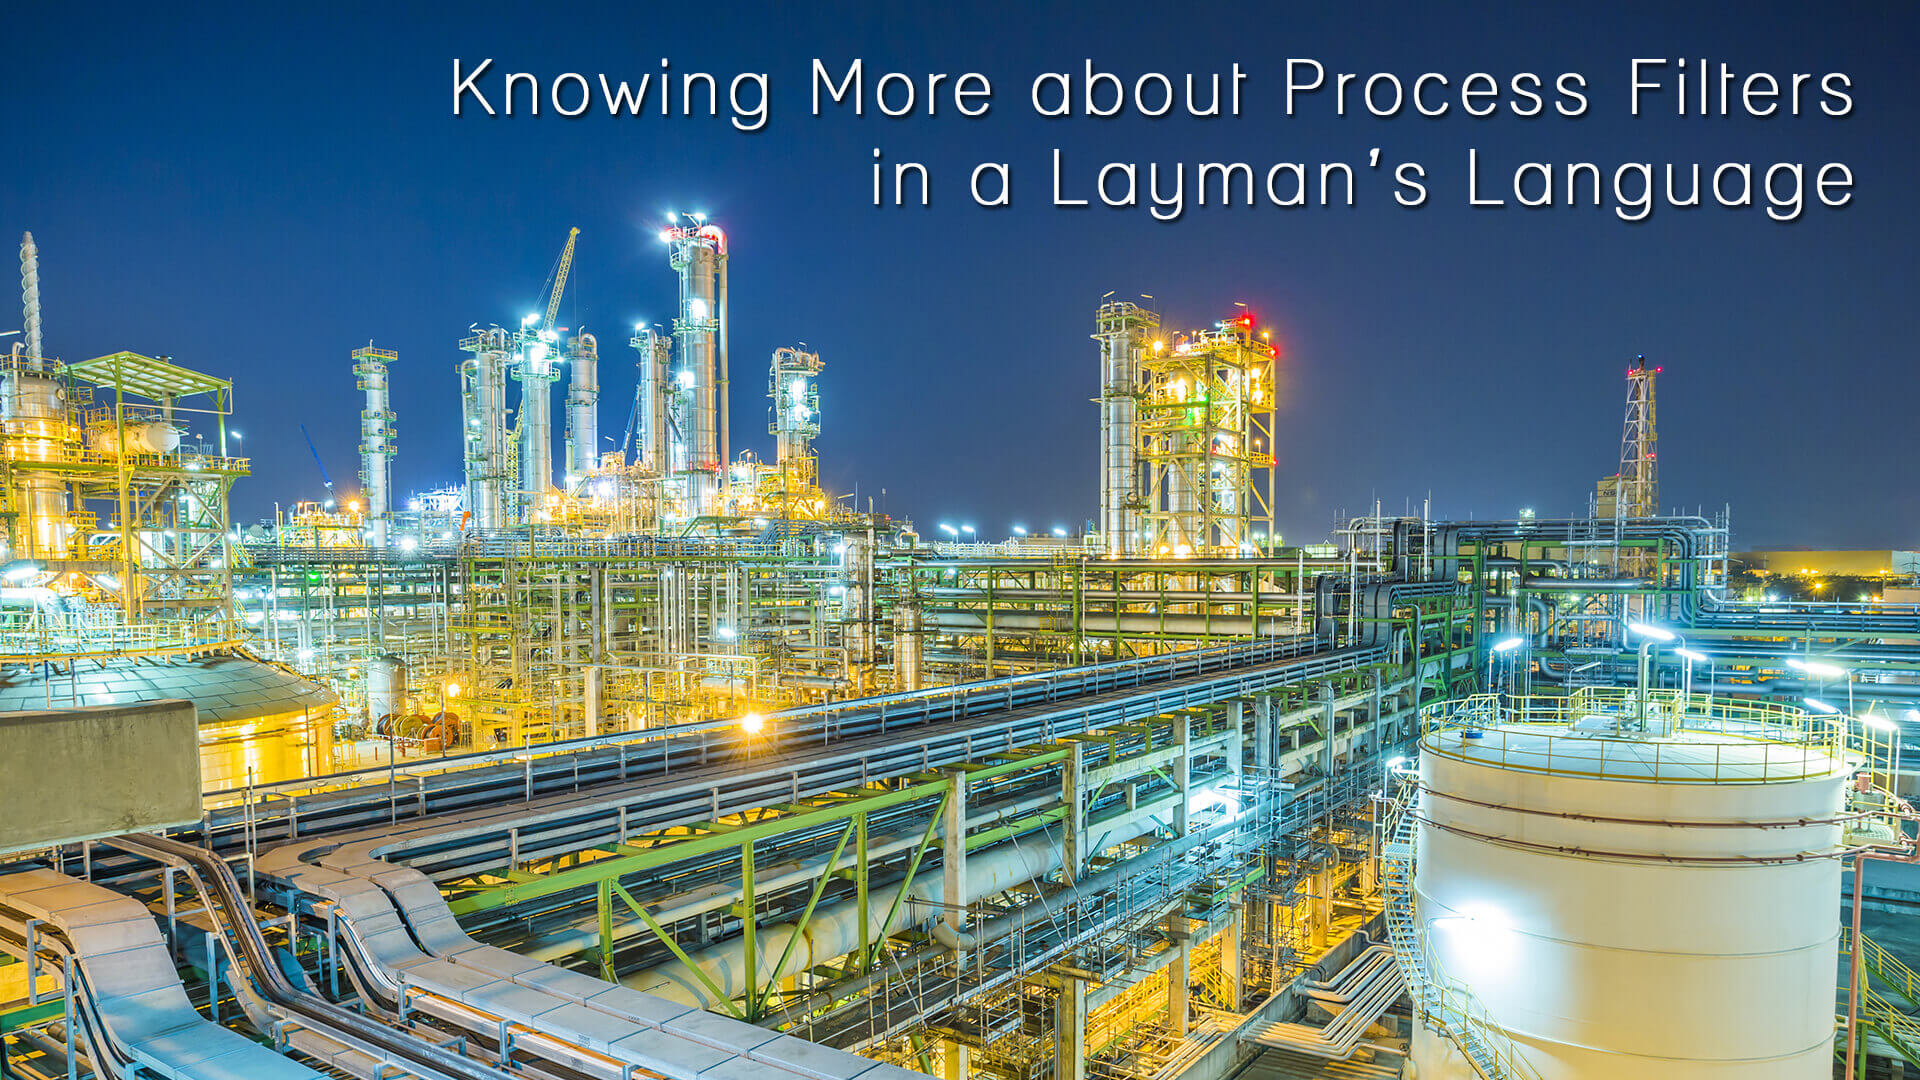 Knowing More about Process Filters in a Lay Man's Language